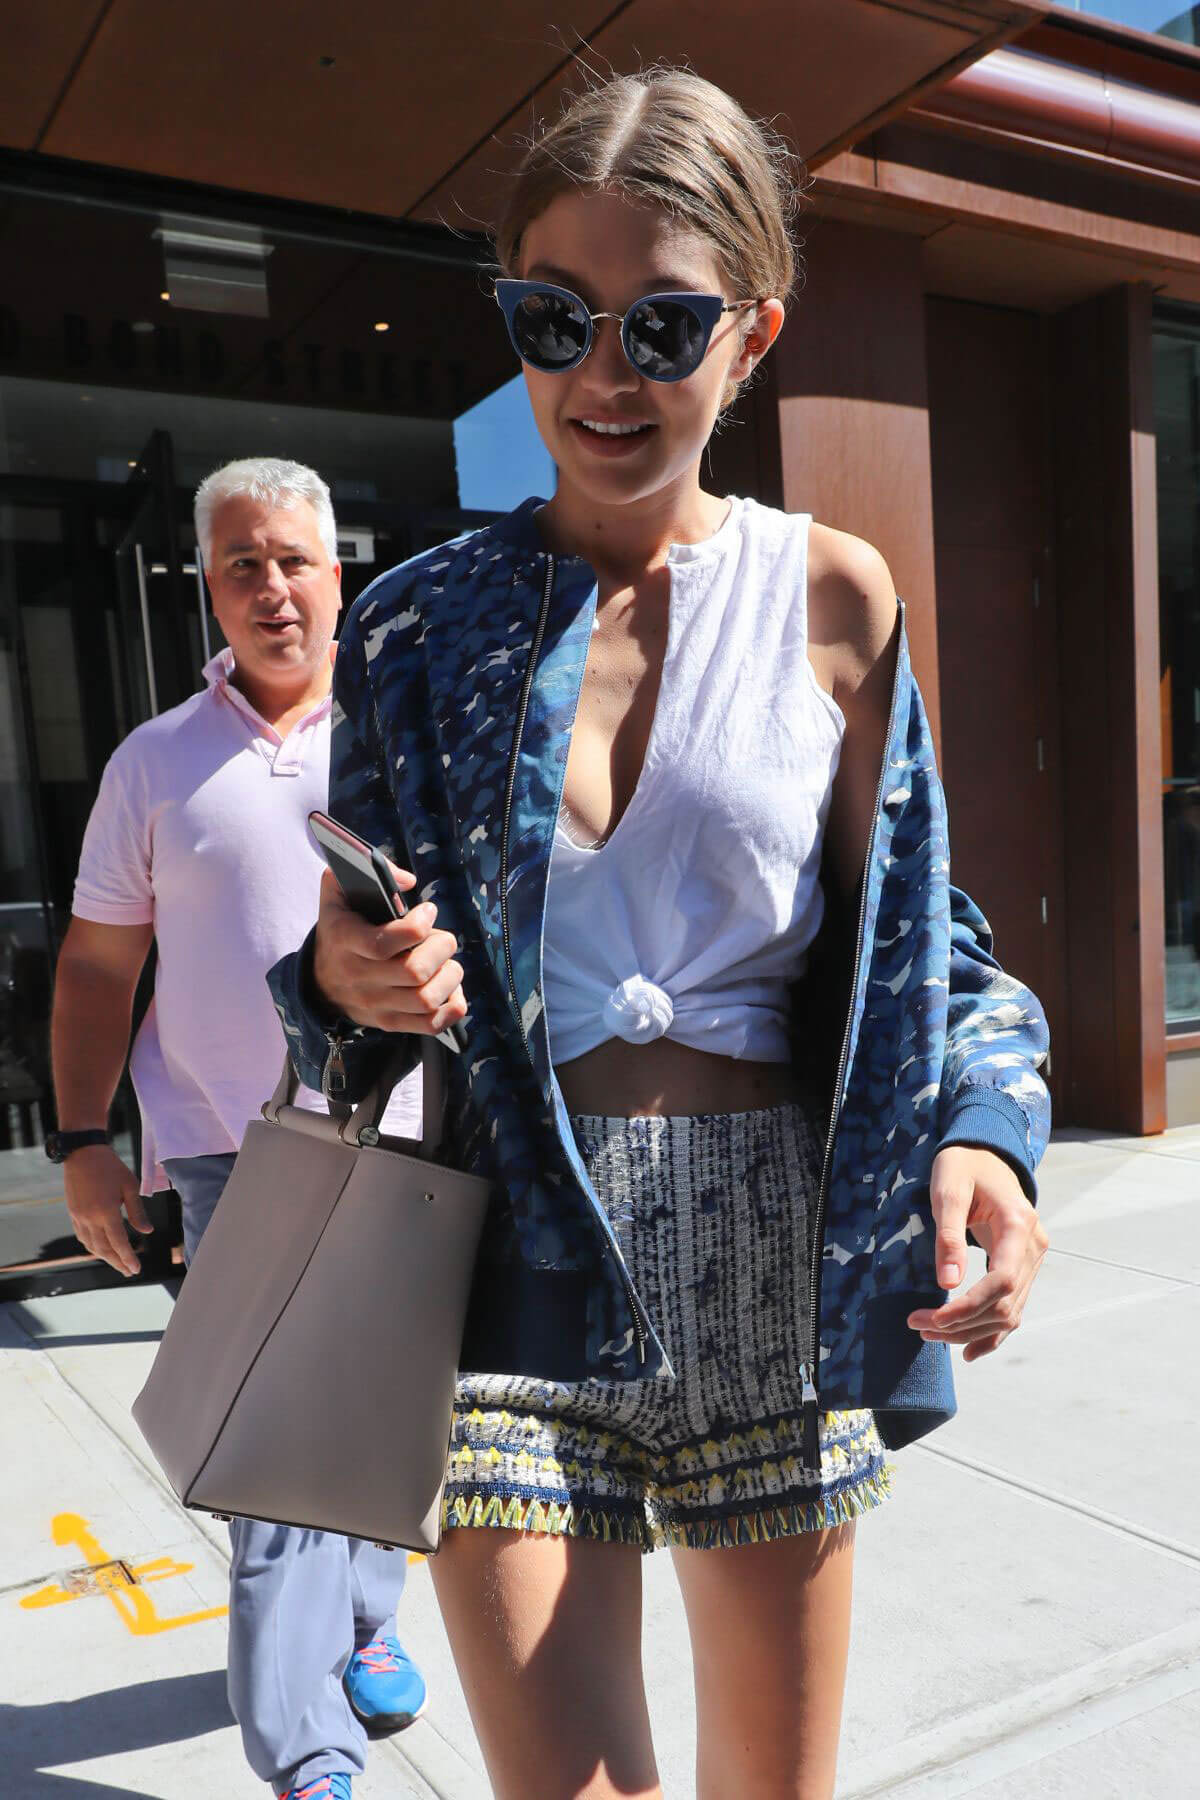 Gigi Hadid in Shorts Out and About in New York Photos